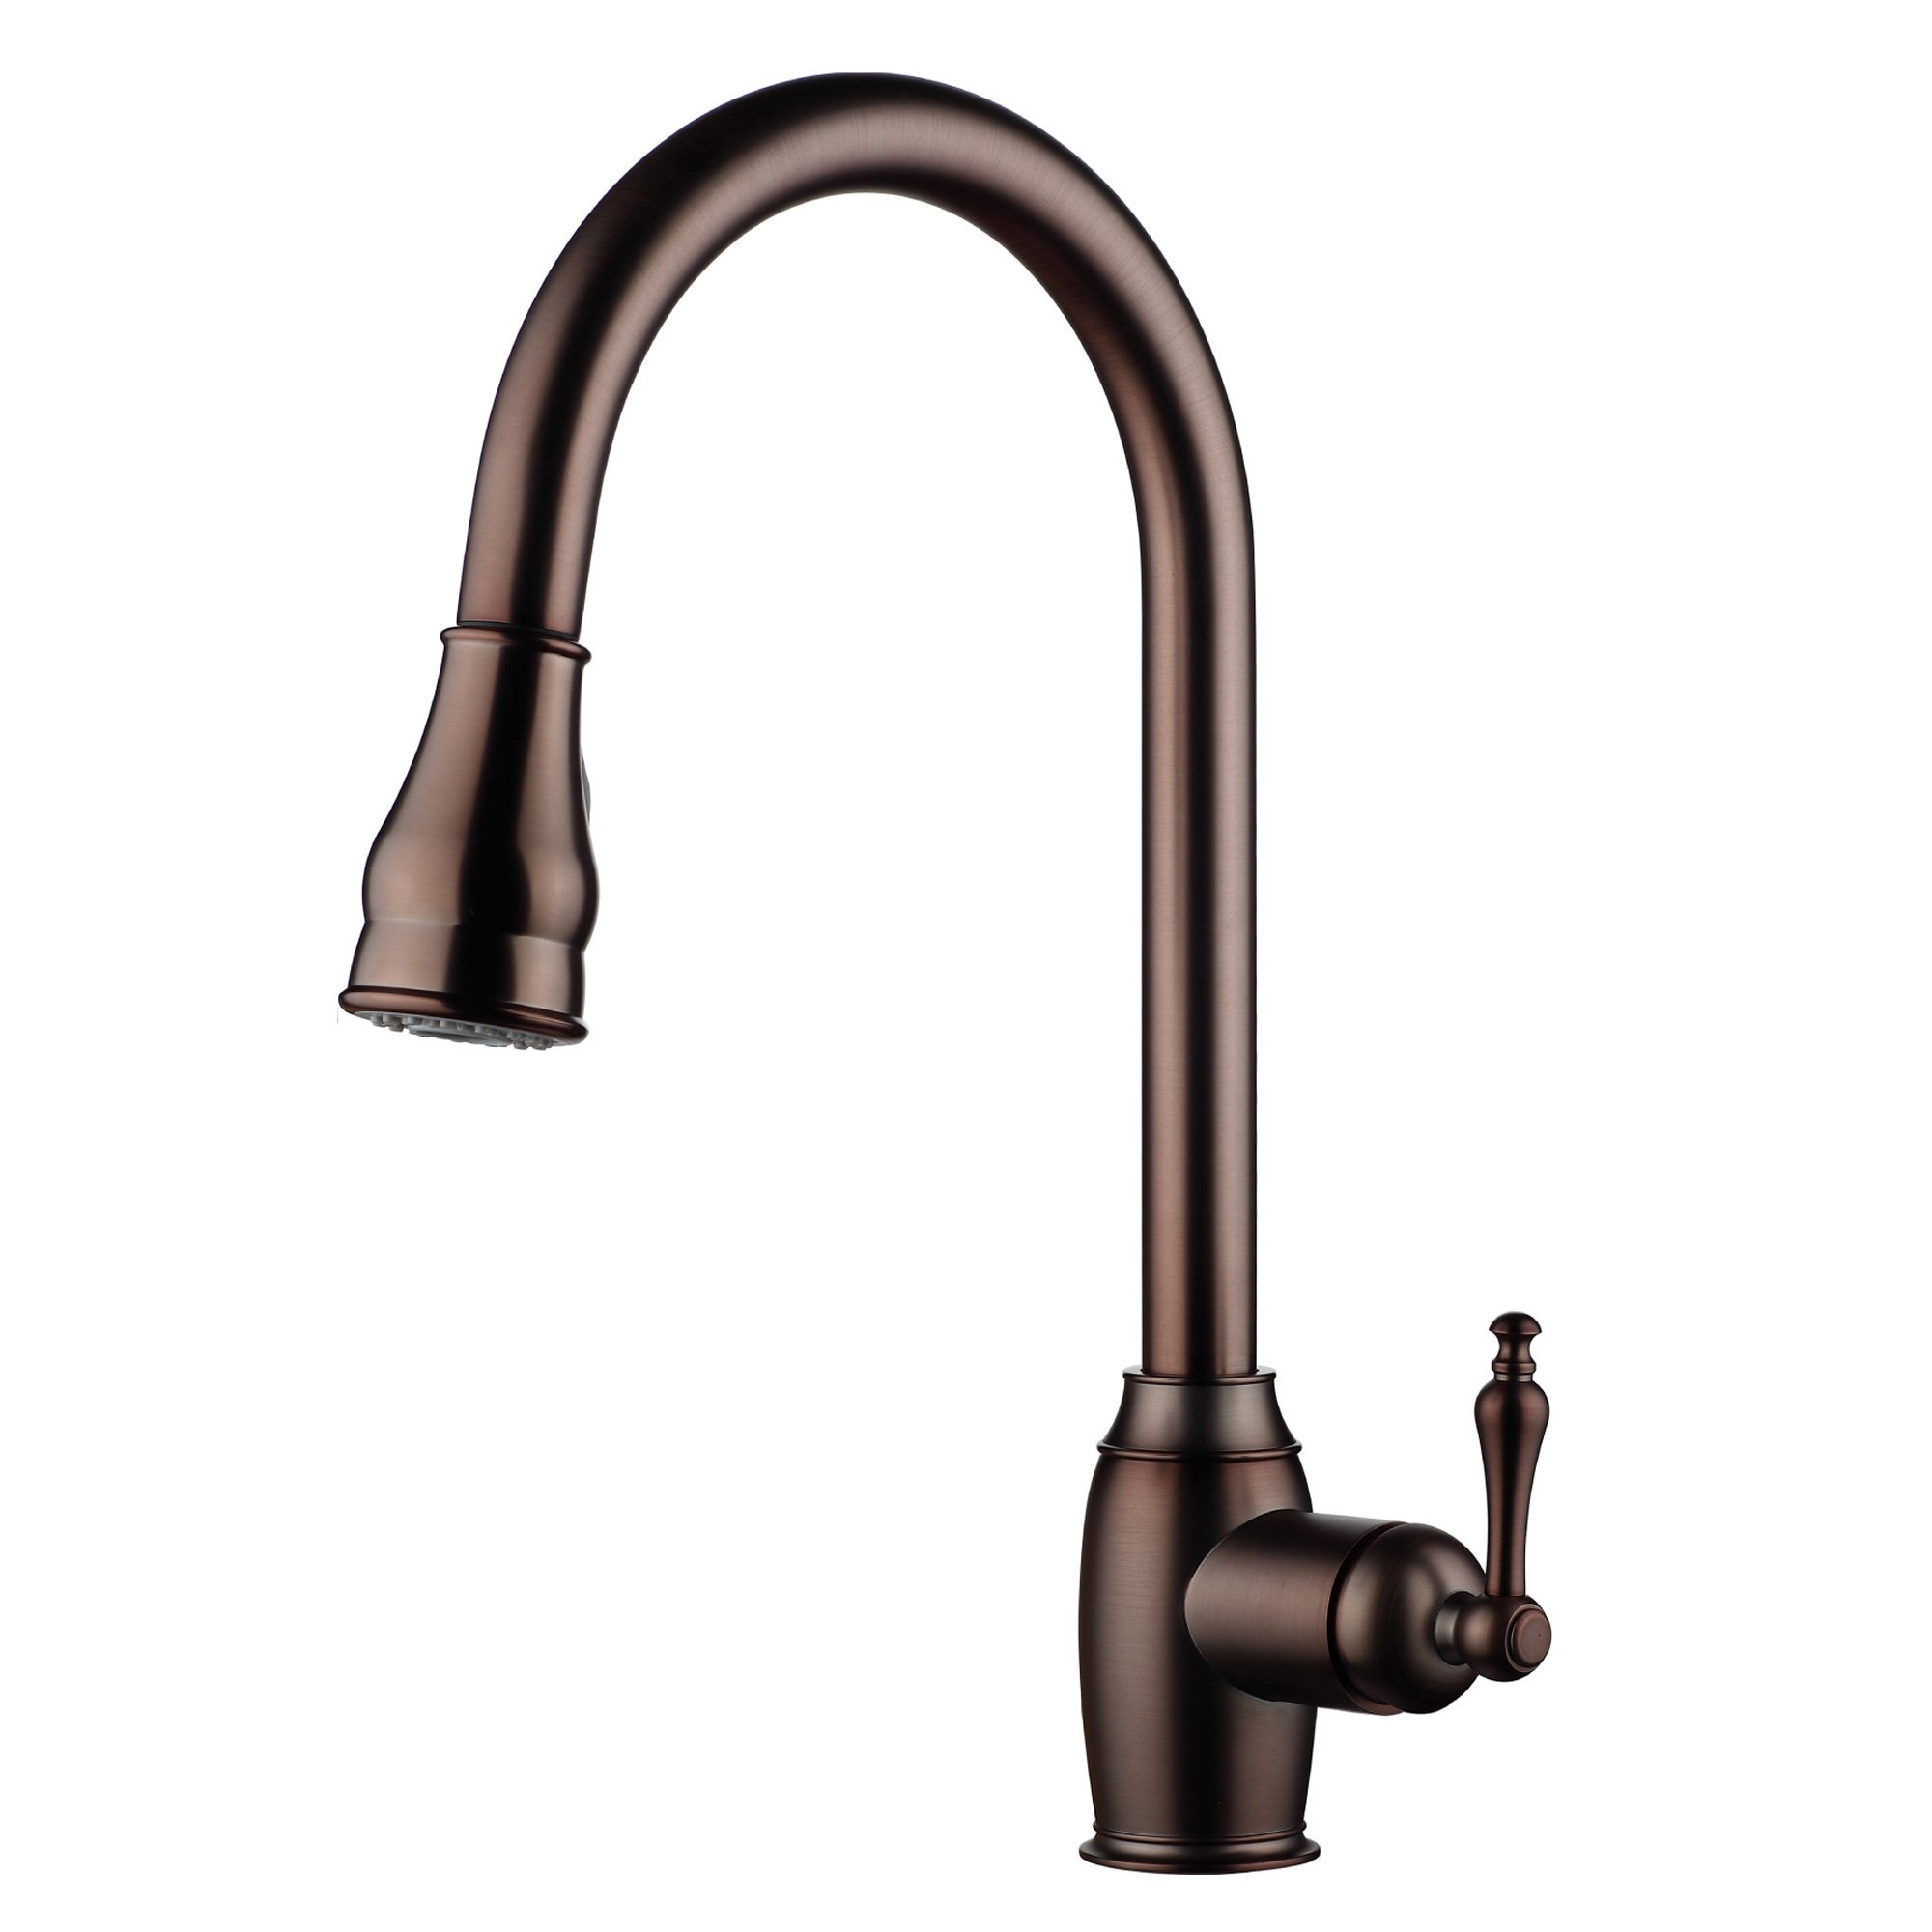 Bronze;1-hole Brass Pull-down Kitchen Sink Faucet with 360 Degree Magnetic Sprayer; 1- handle Kitchen Faucet; Excellent Finish, Nylon Hose, and Docking System